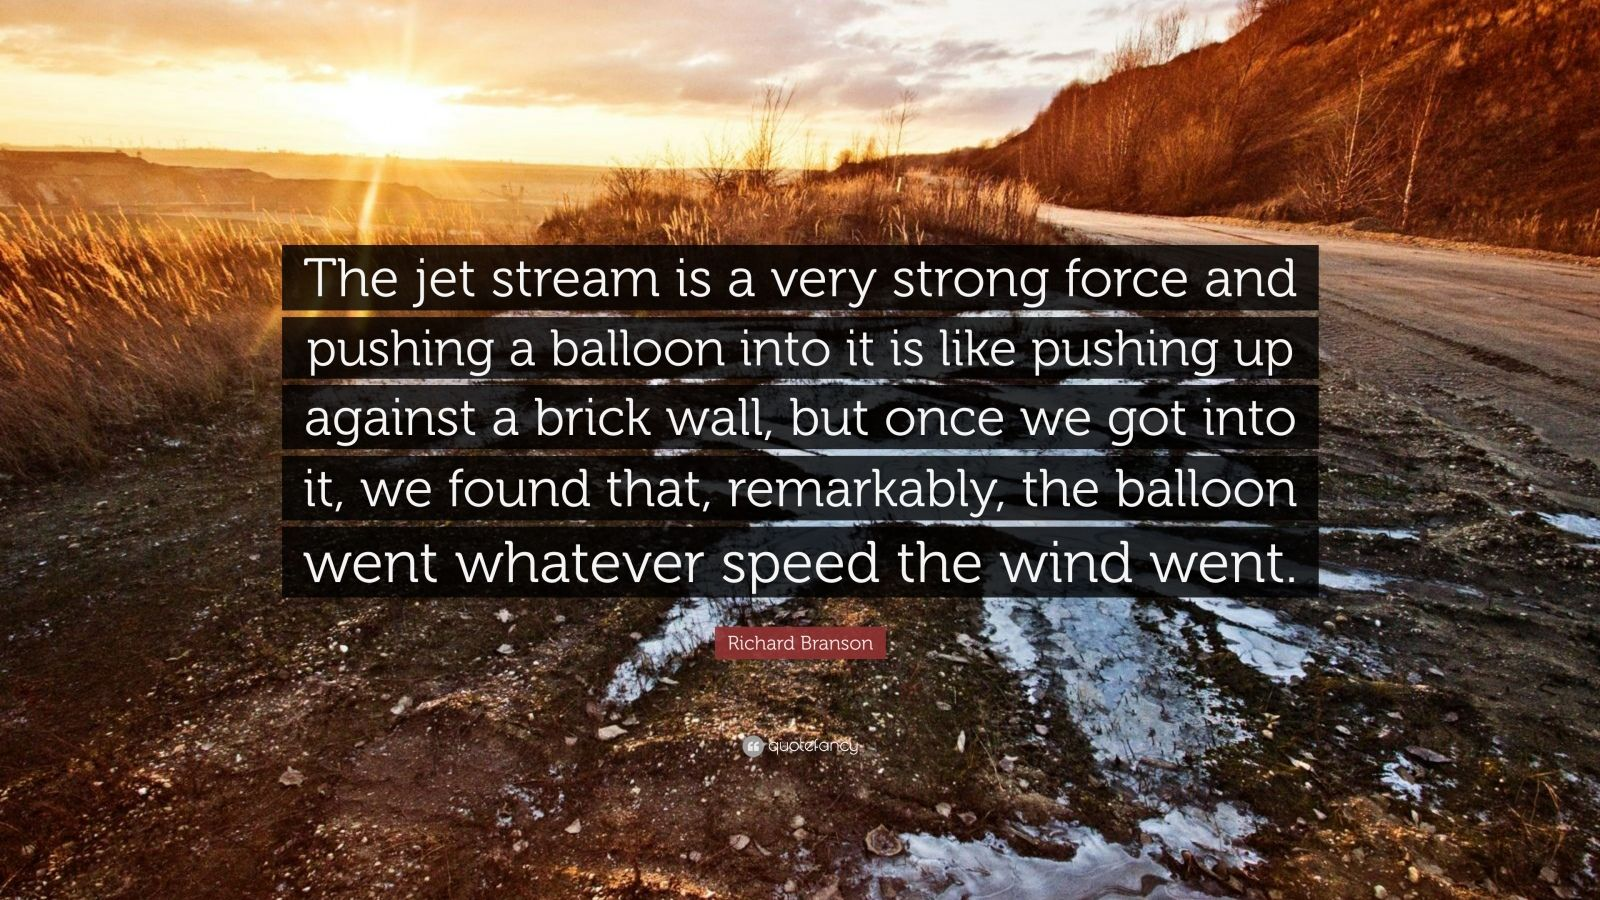 """Richard Branson Quote: """"The jet stream is a very strong force and pushing a balloon into it is like pushing up against a brick wall, but once we got into it, we found that, remarkably, the balloon went whatever speed the wind went."""""""